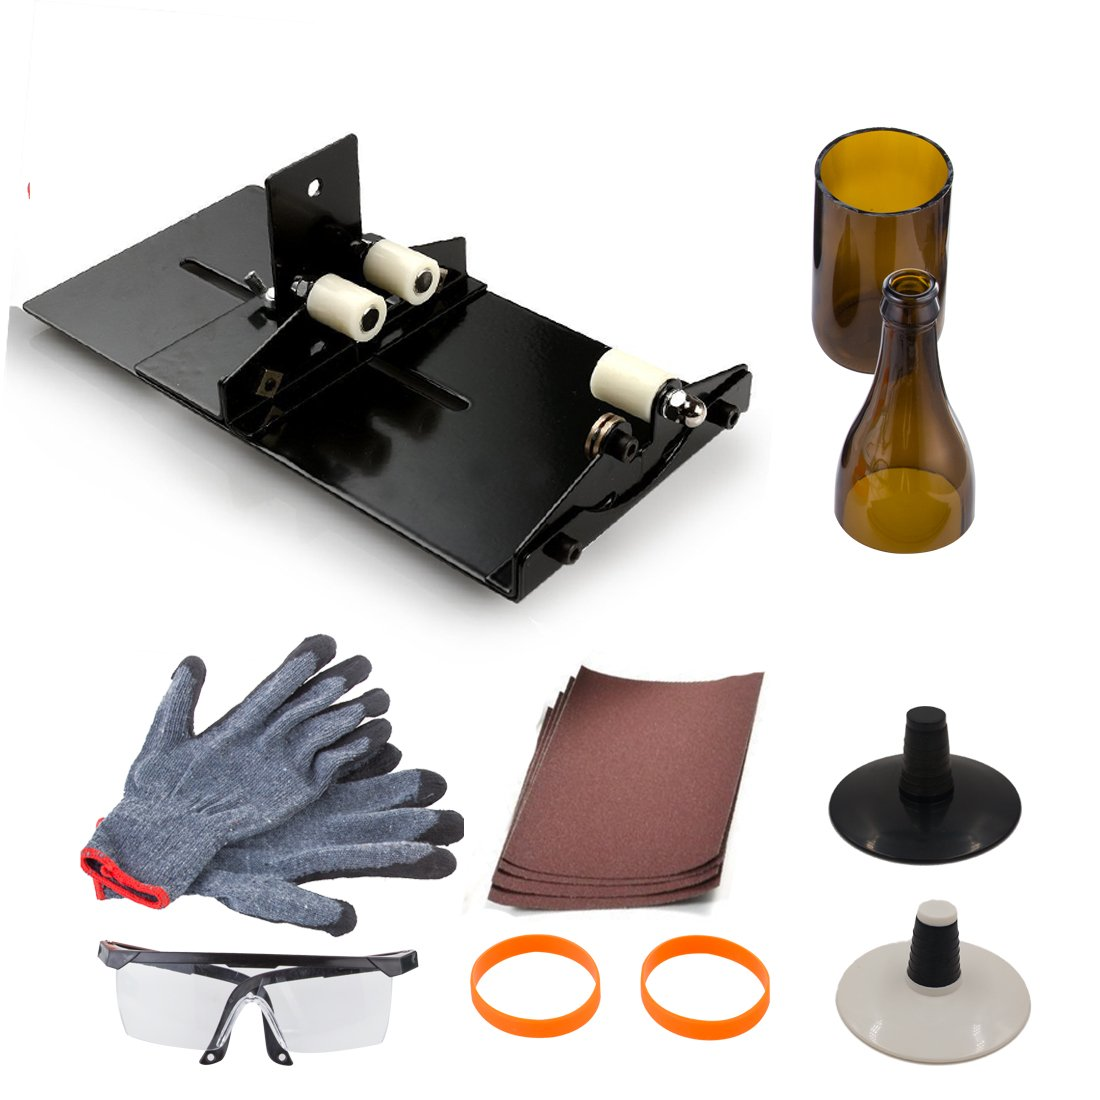 Wine Bottle Cutting Tool Kit, AceList Stained Glass Cutting Tool Kit Wine Jar Etching for DIY Glassware w/Protective Goggle Glove Glastopper